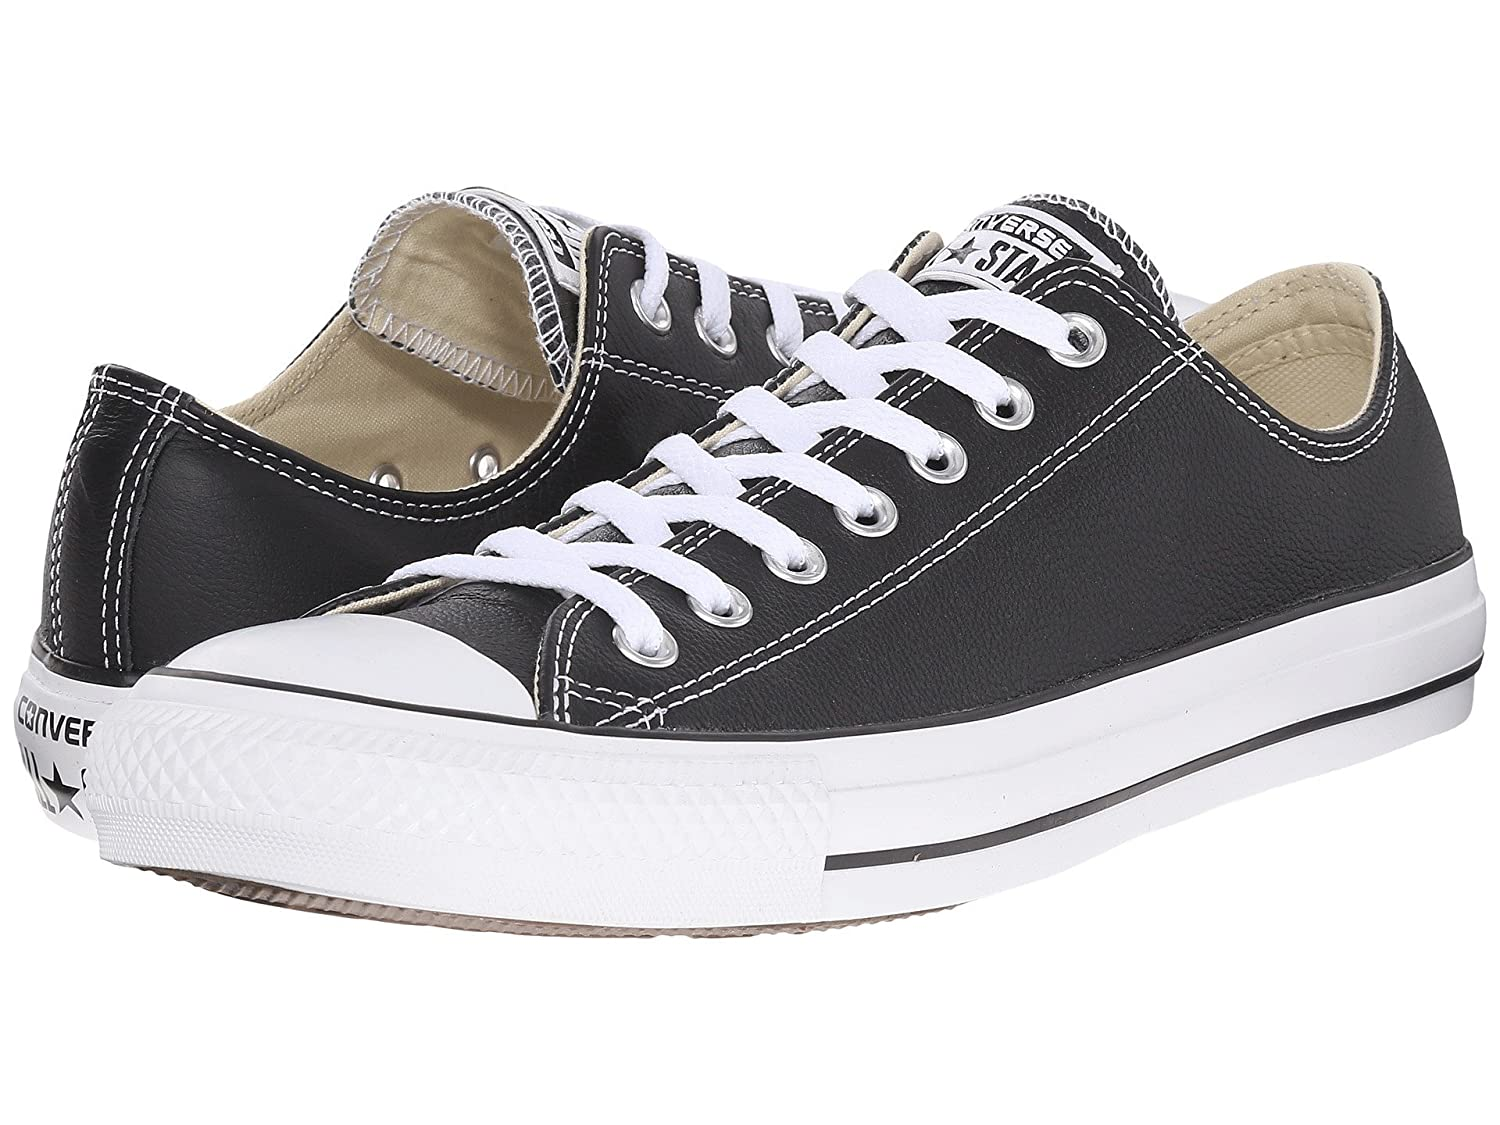 Converse Men's Chuck Taylor All Star Leather Low Top Sneaker B007PBEV48 6 M US|Black